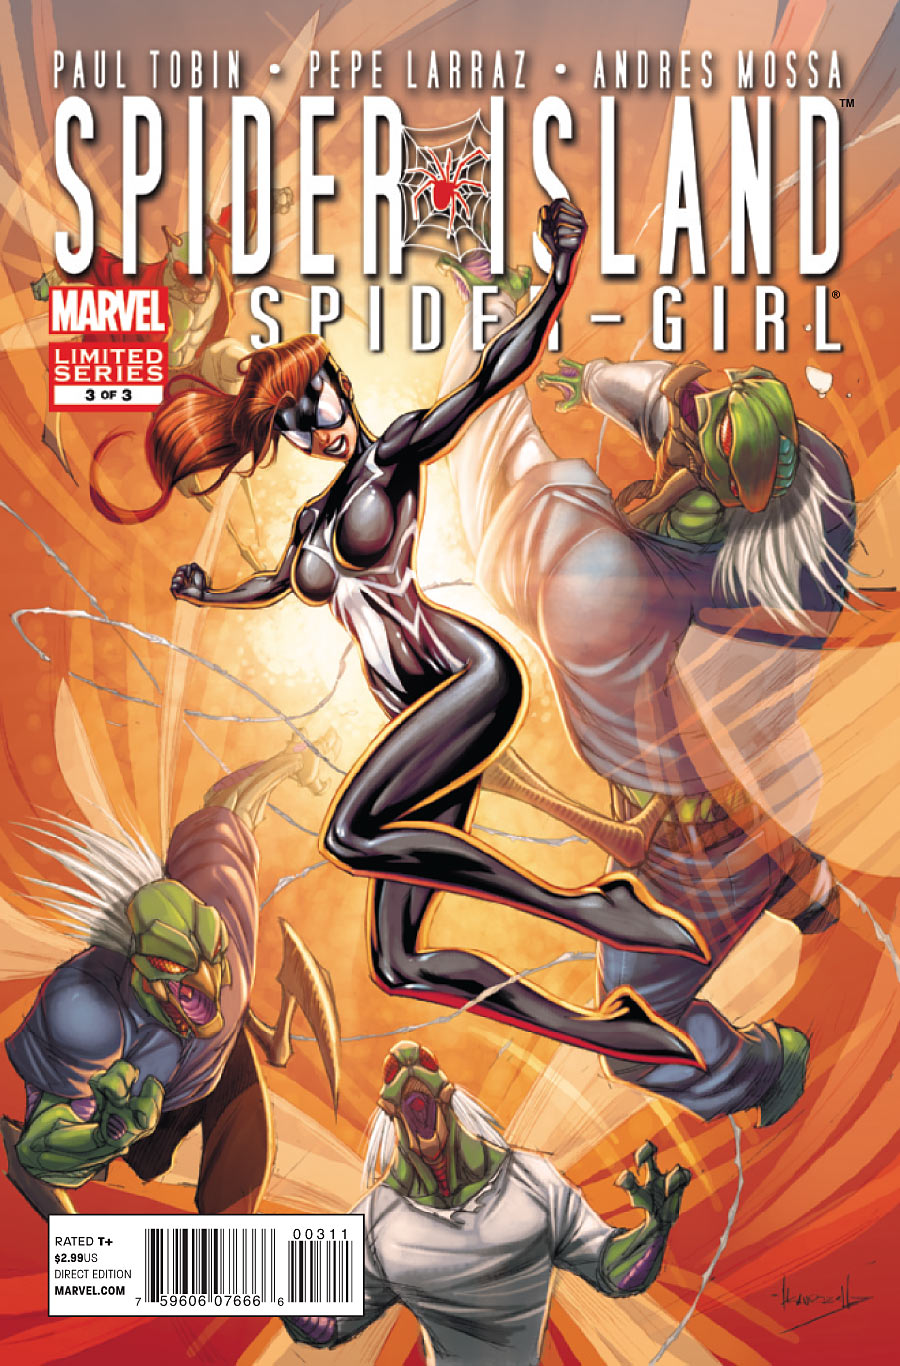 Spider-Island: The Amazing Spider-Girl Vol 1 3